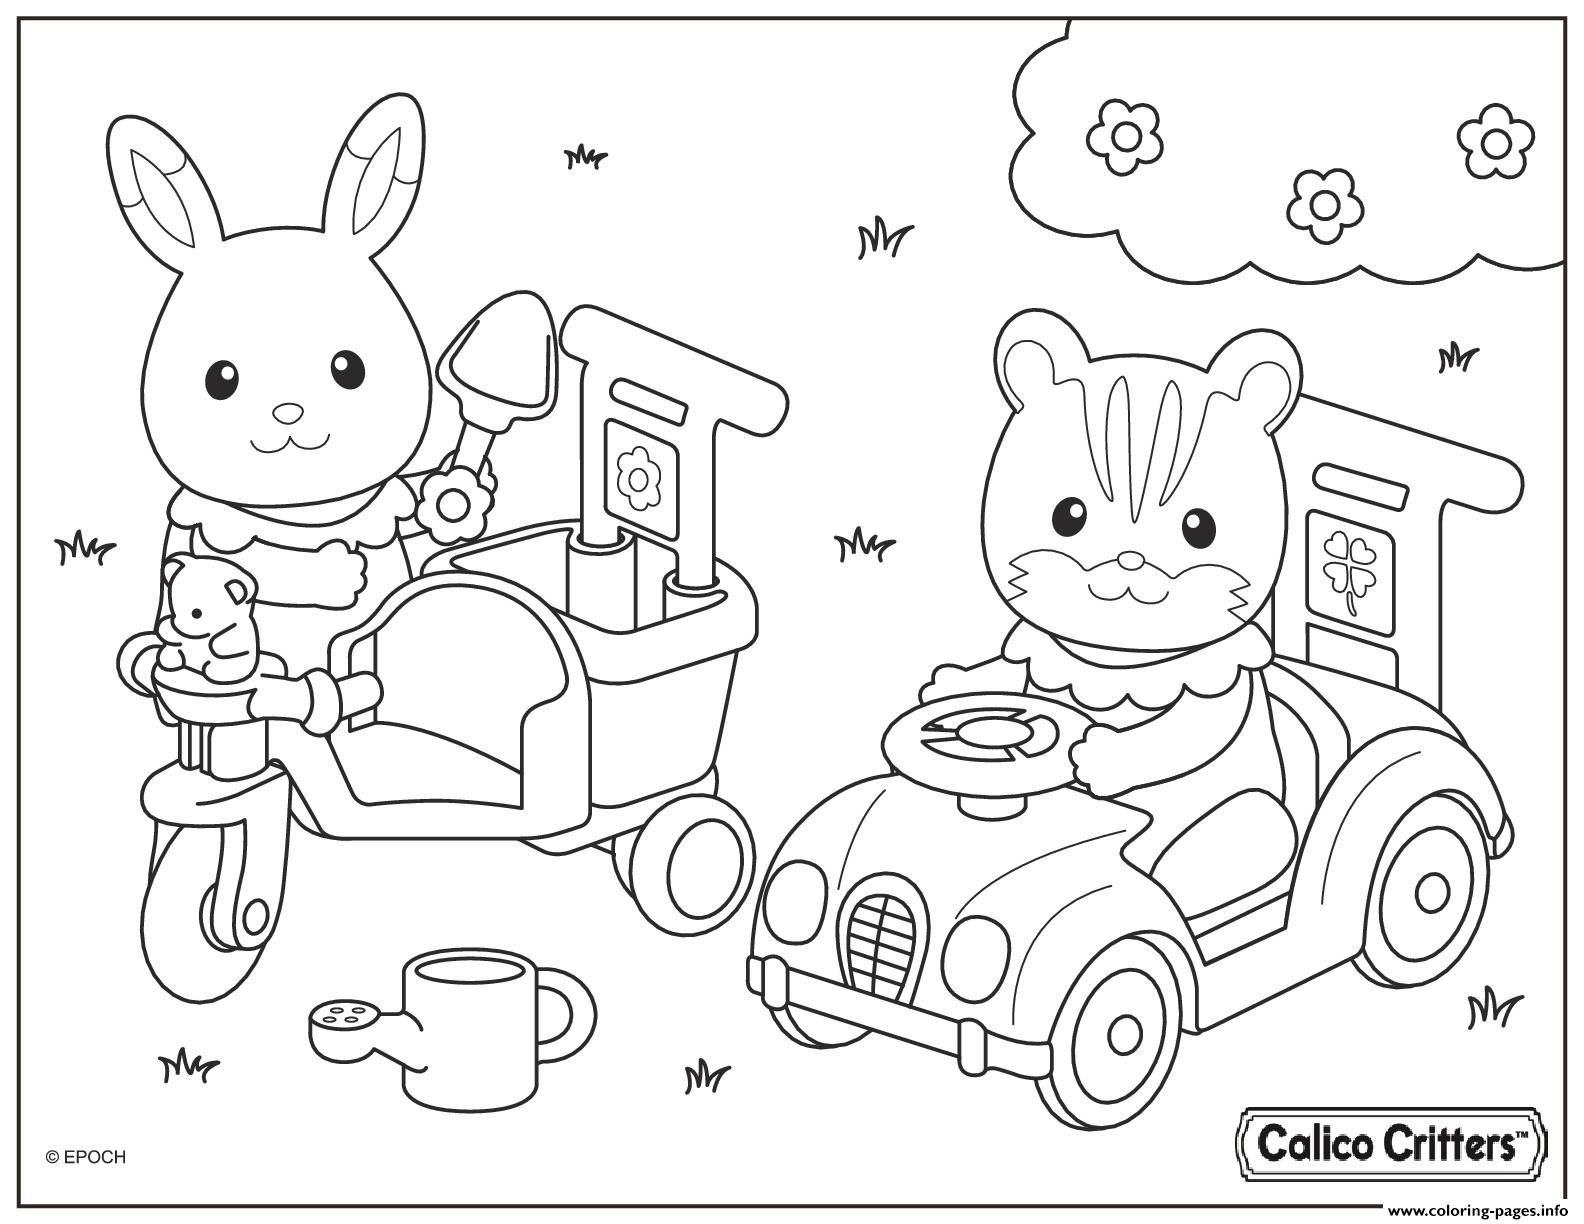 Calico Critters Drive Car With Friend Coloring Pages Printable